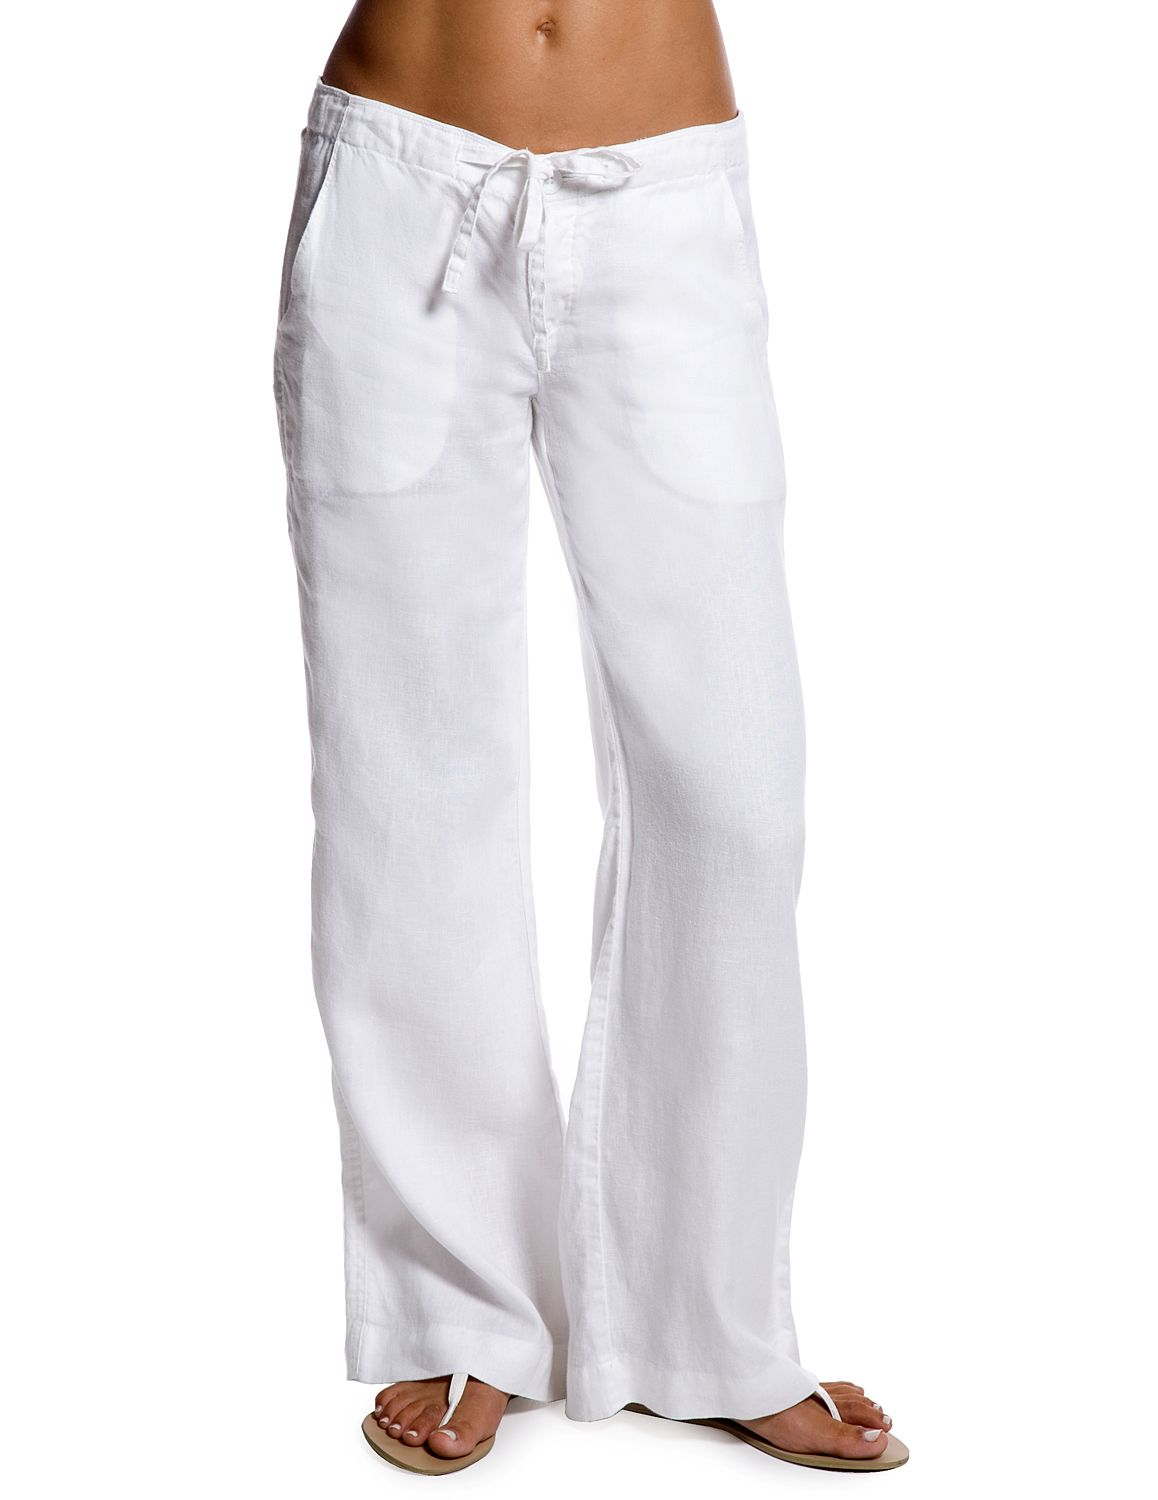 White Relaxed Linen Pants For Womens Resort Wear From Island